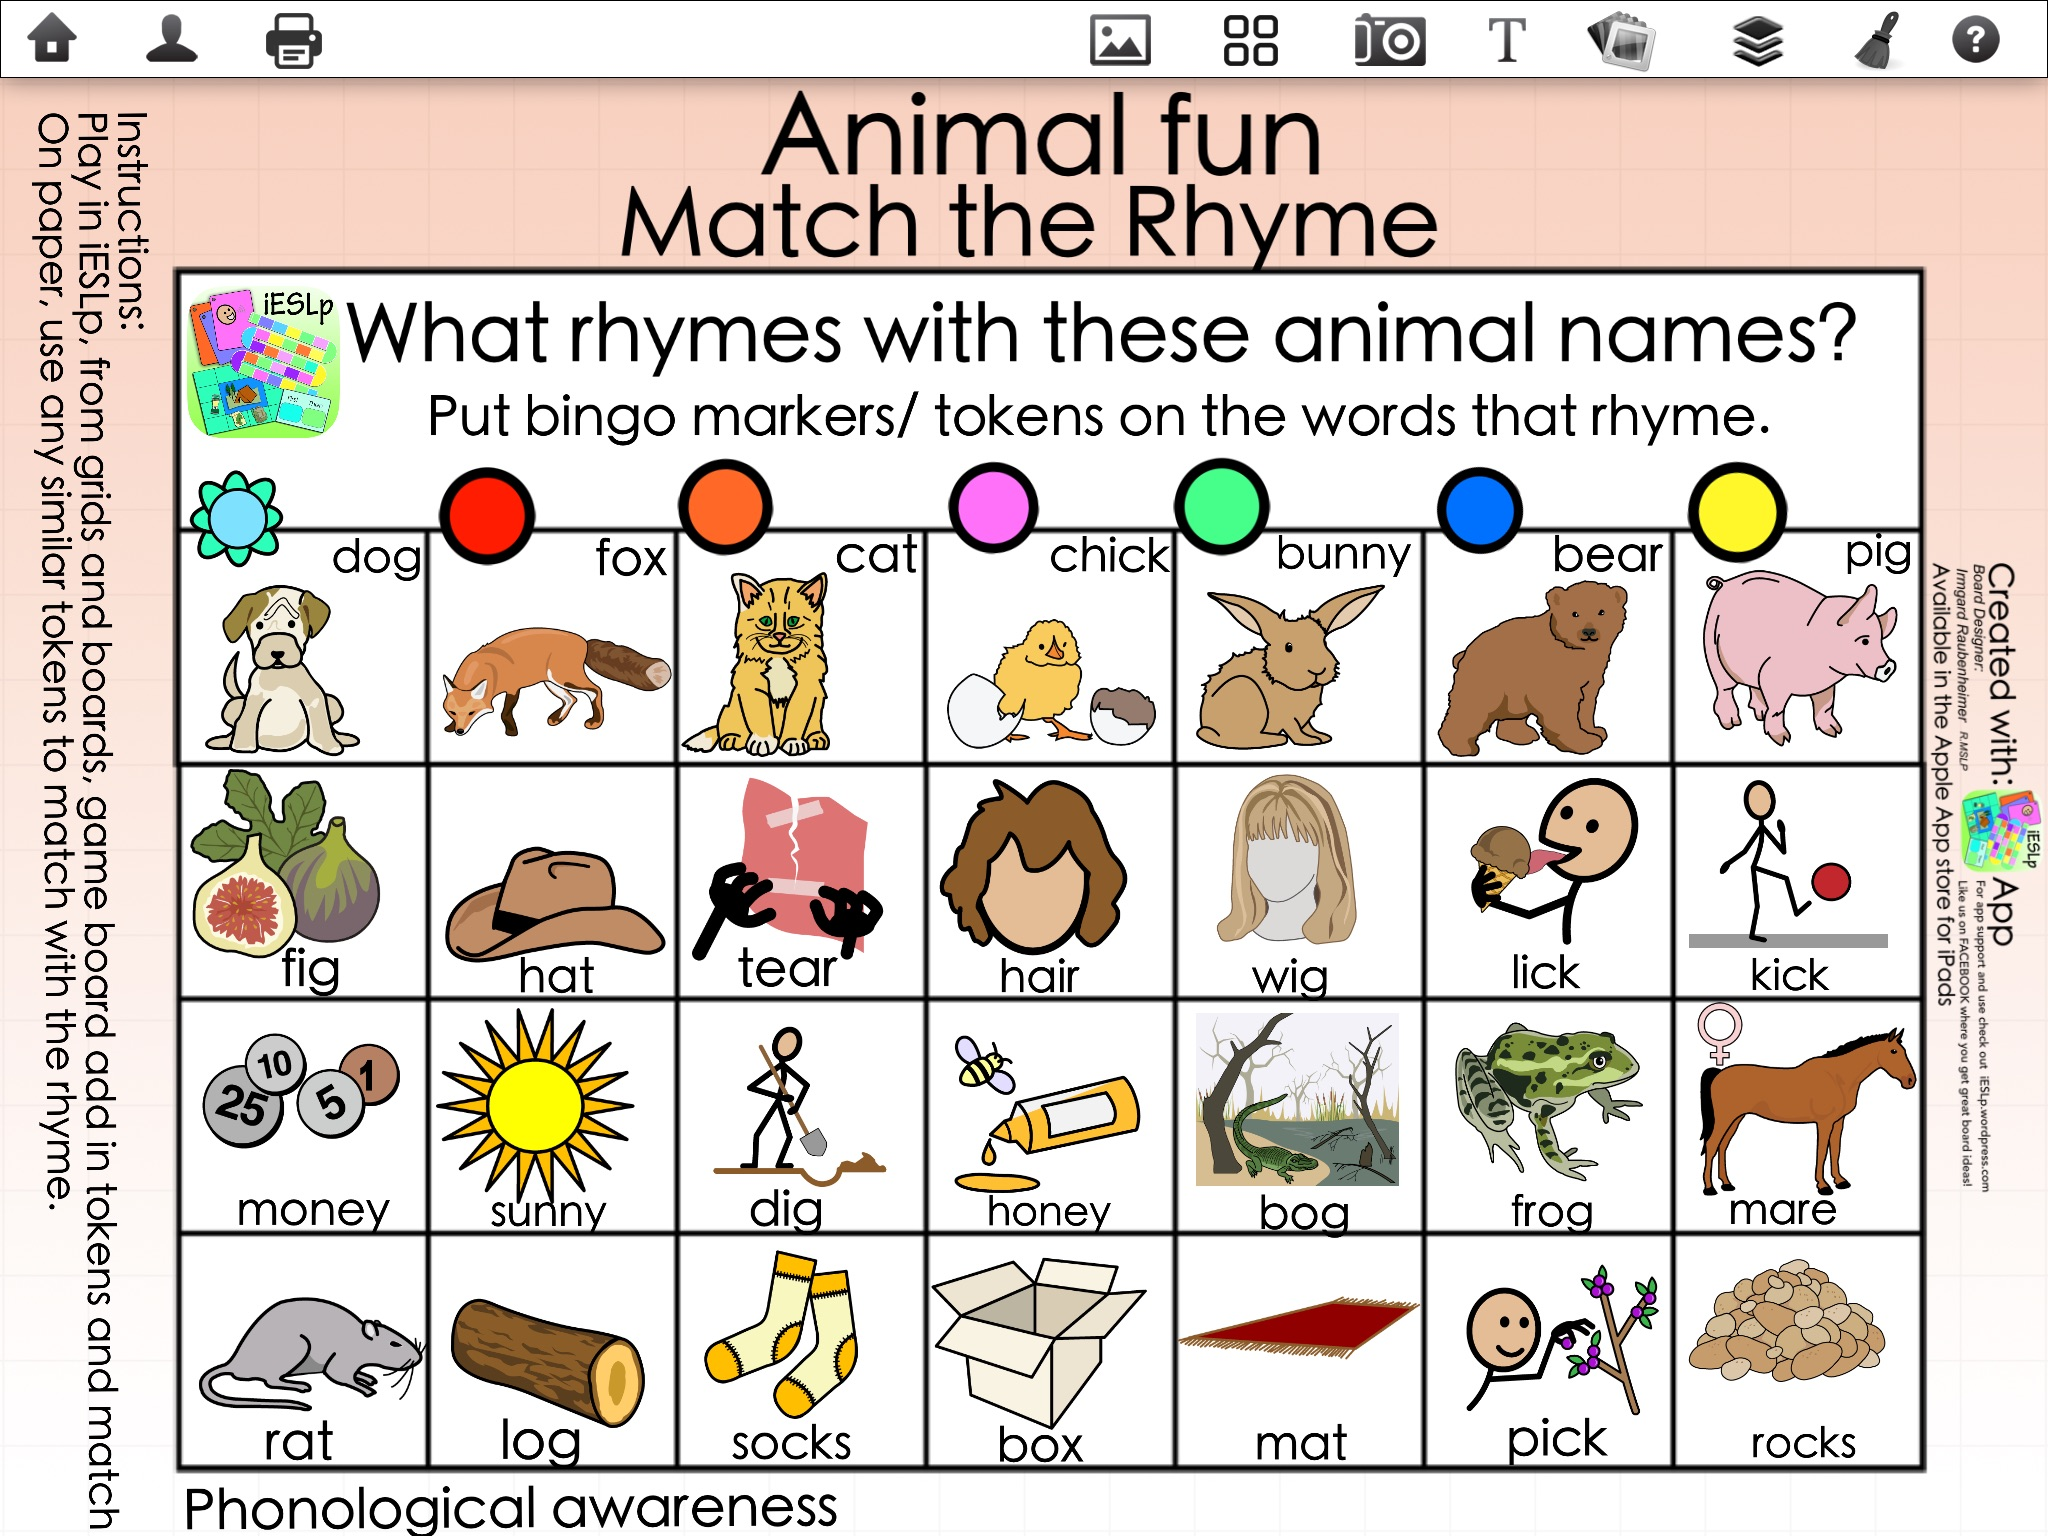 Worksheet Words That Rhyme With Animal animal fun with phonological awerness ieslp app game directions match the rhyme